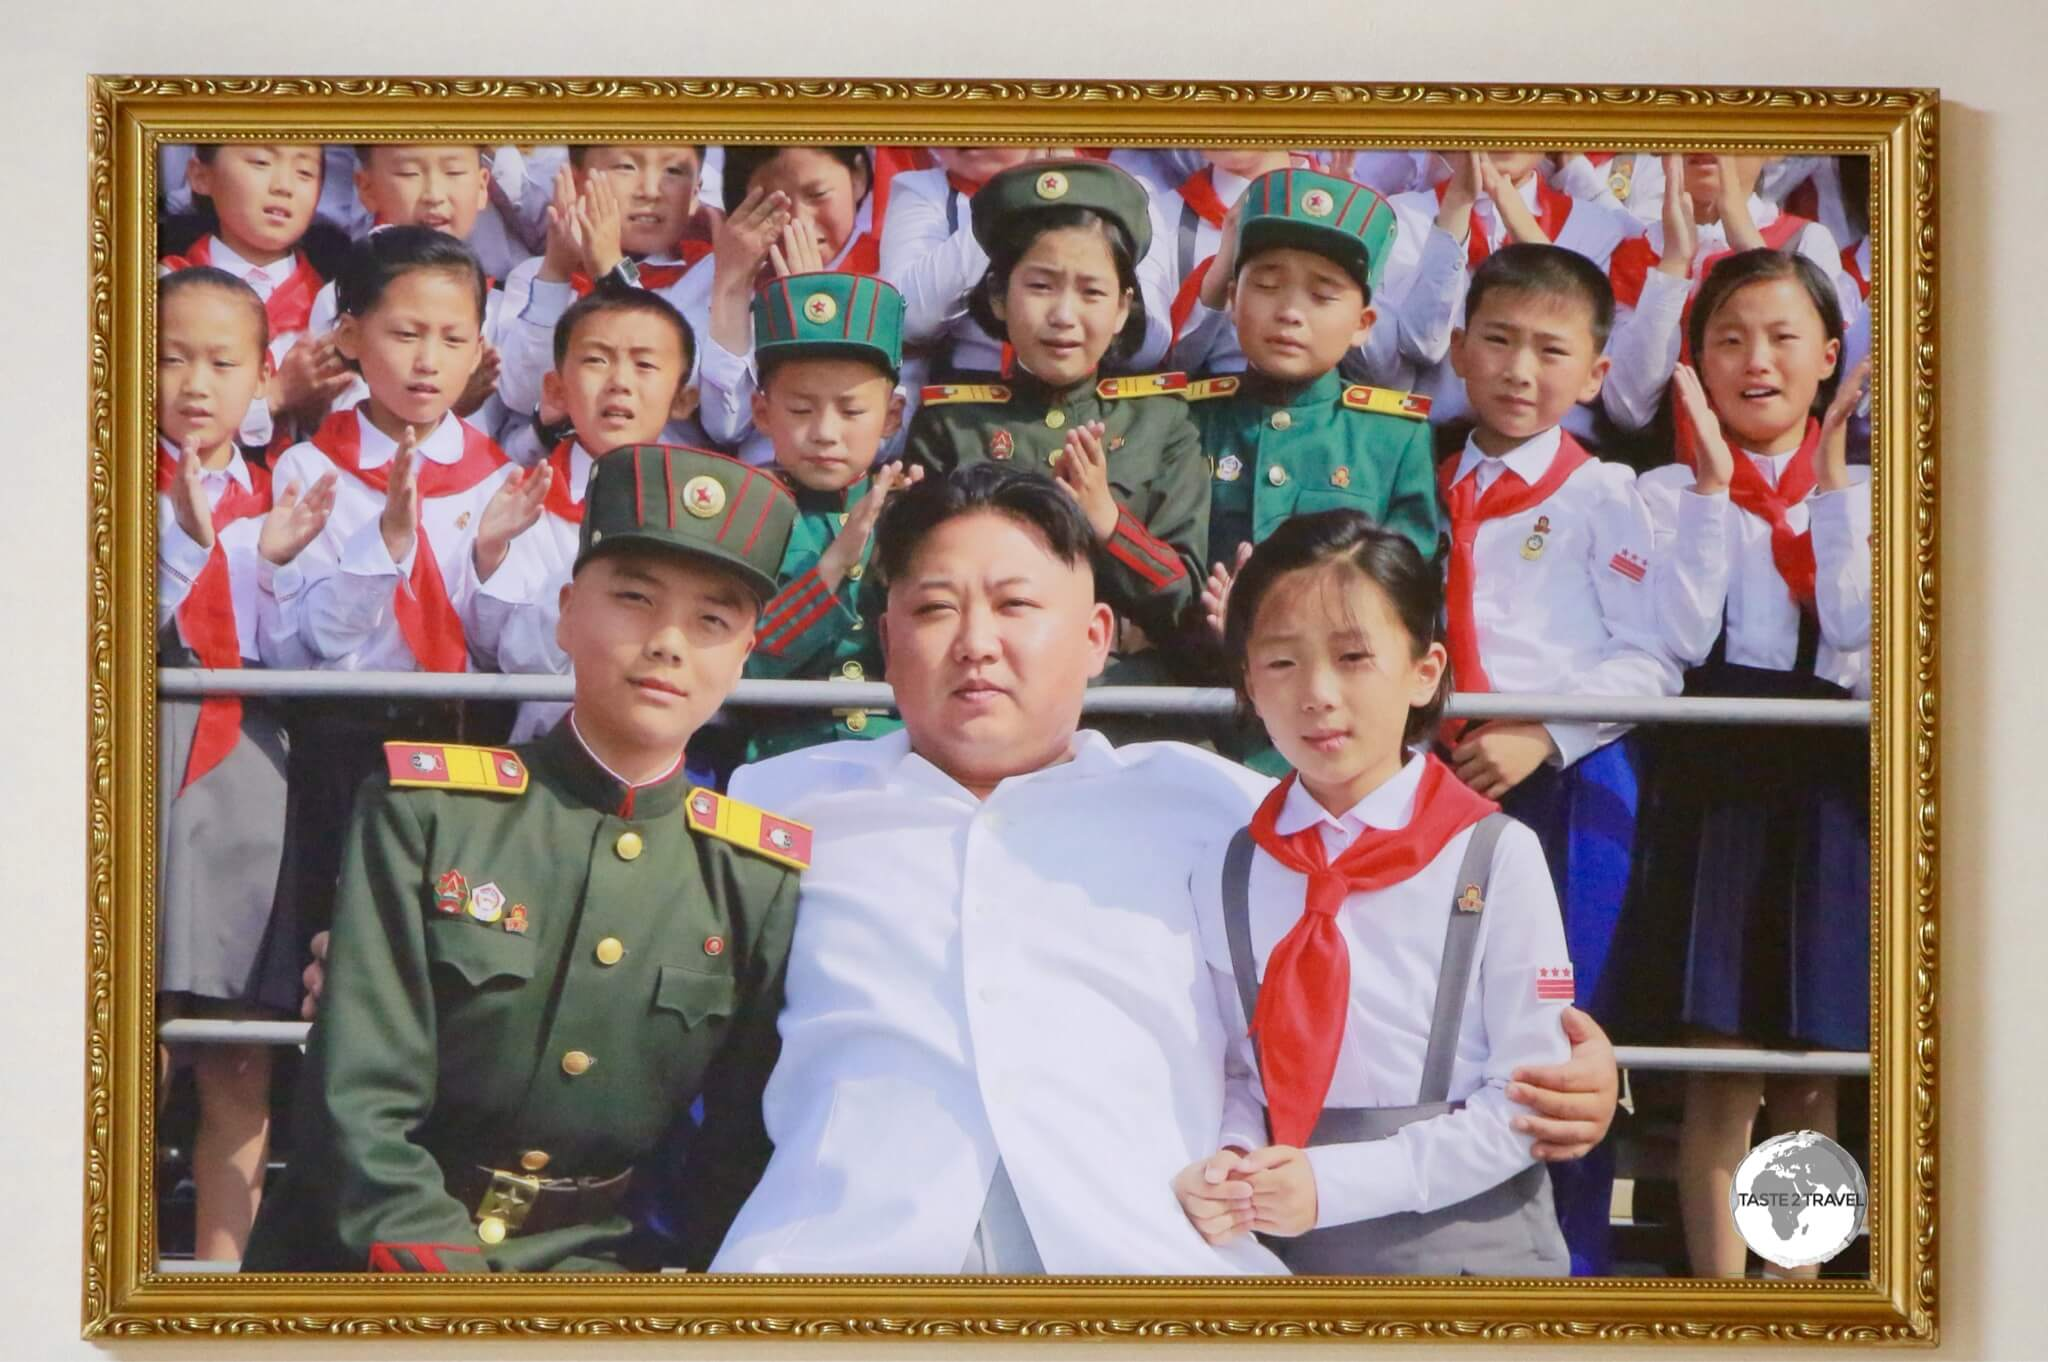 Although current leader Kim Jong-un's image is not displayed publicly, there are photos and paintings of him featured in galleries. Notice the children behind him are crying tears of joy.